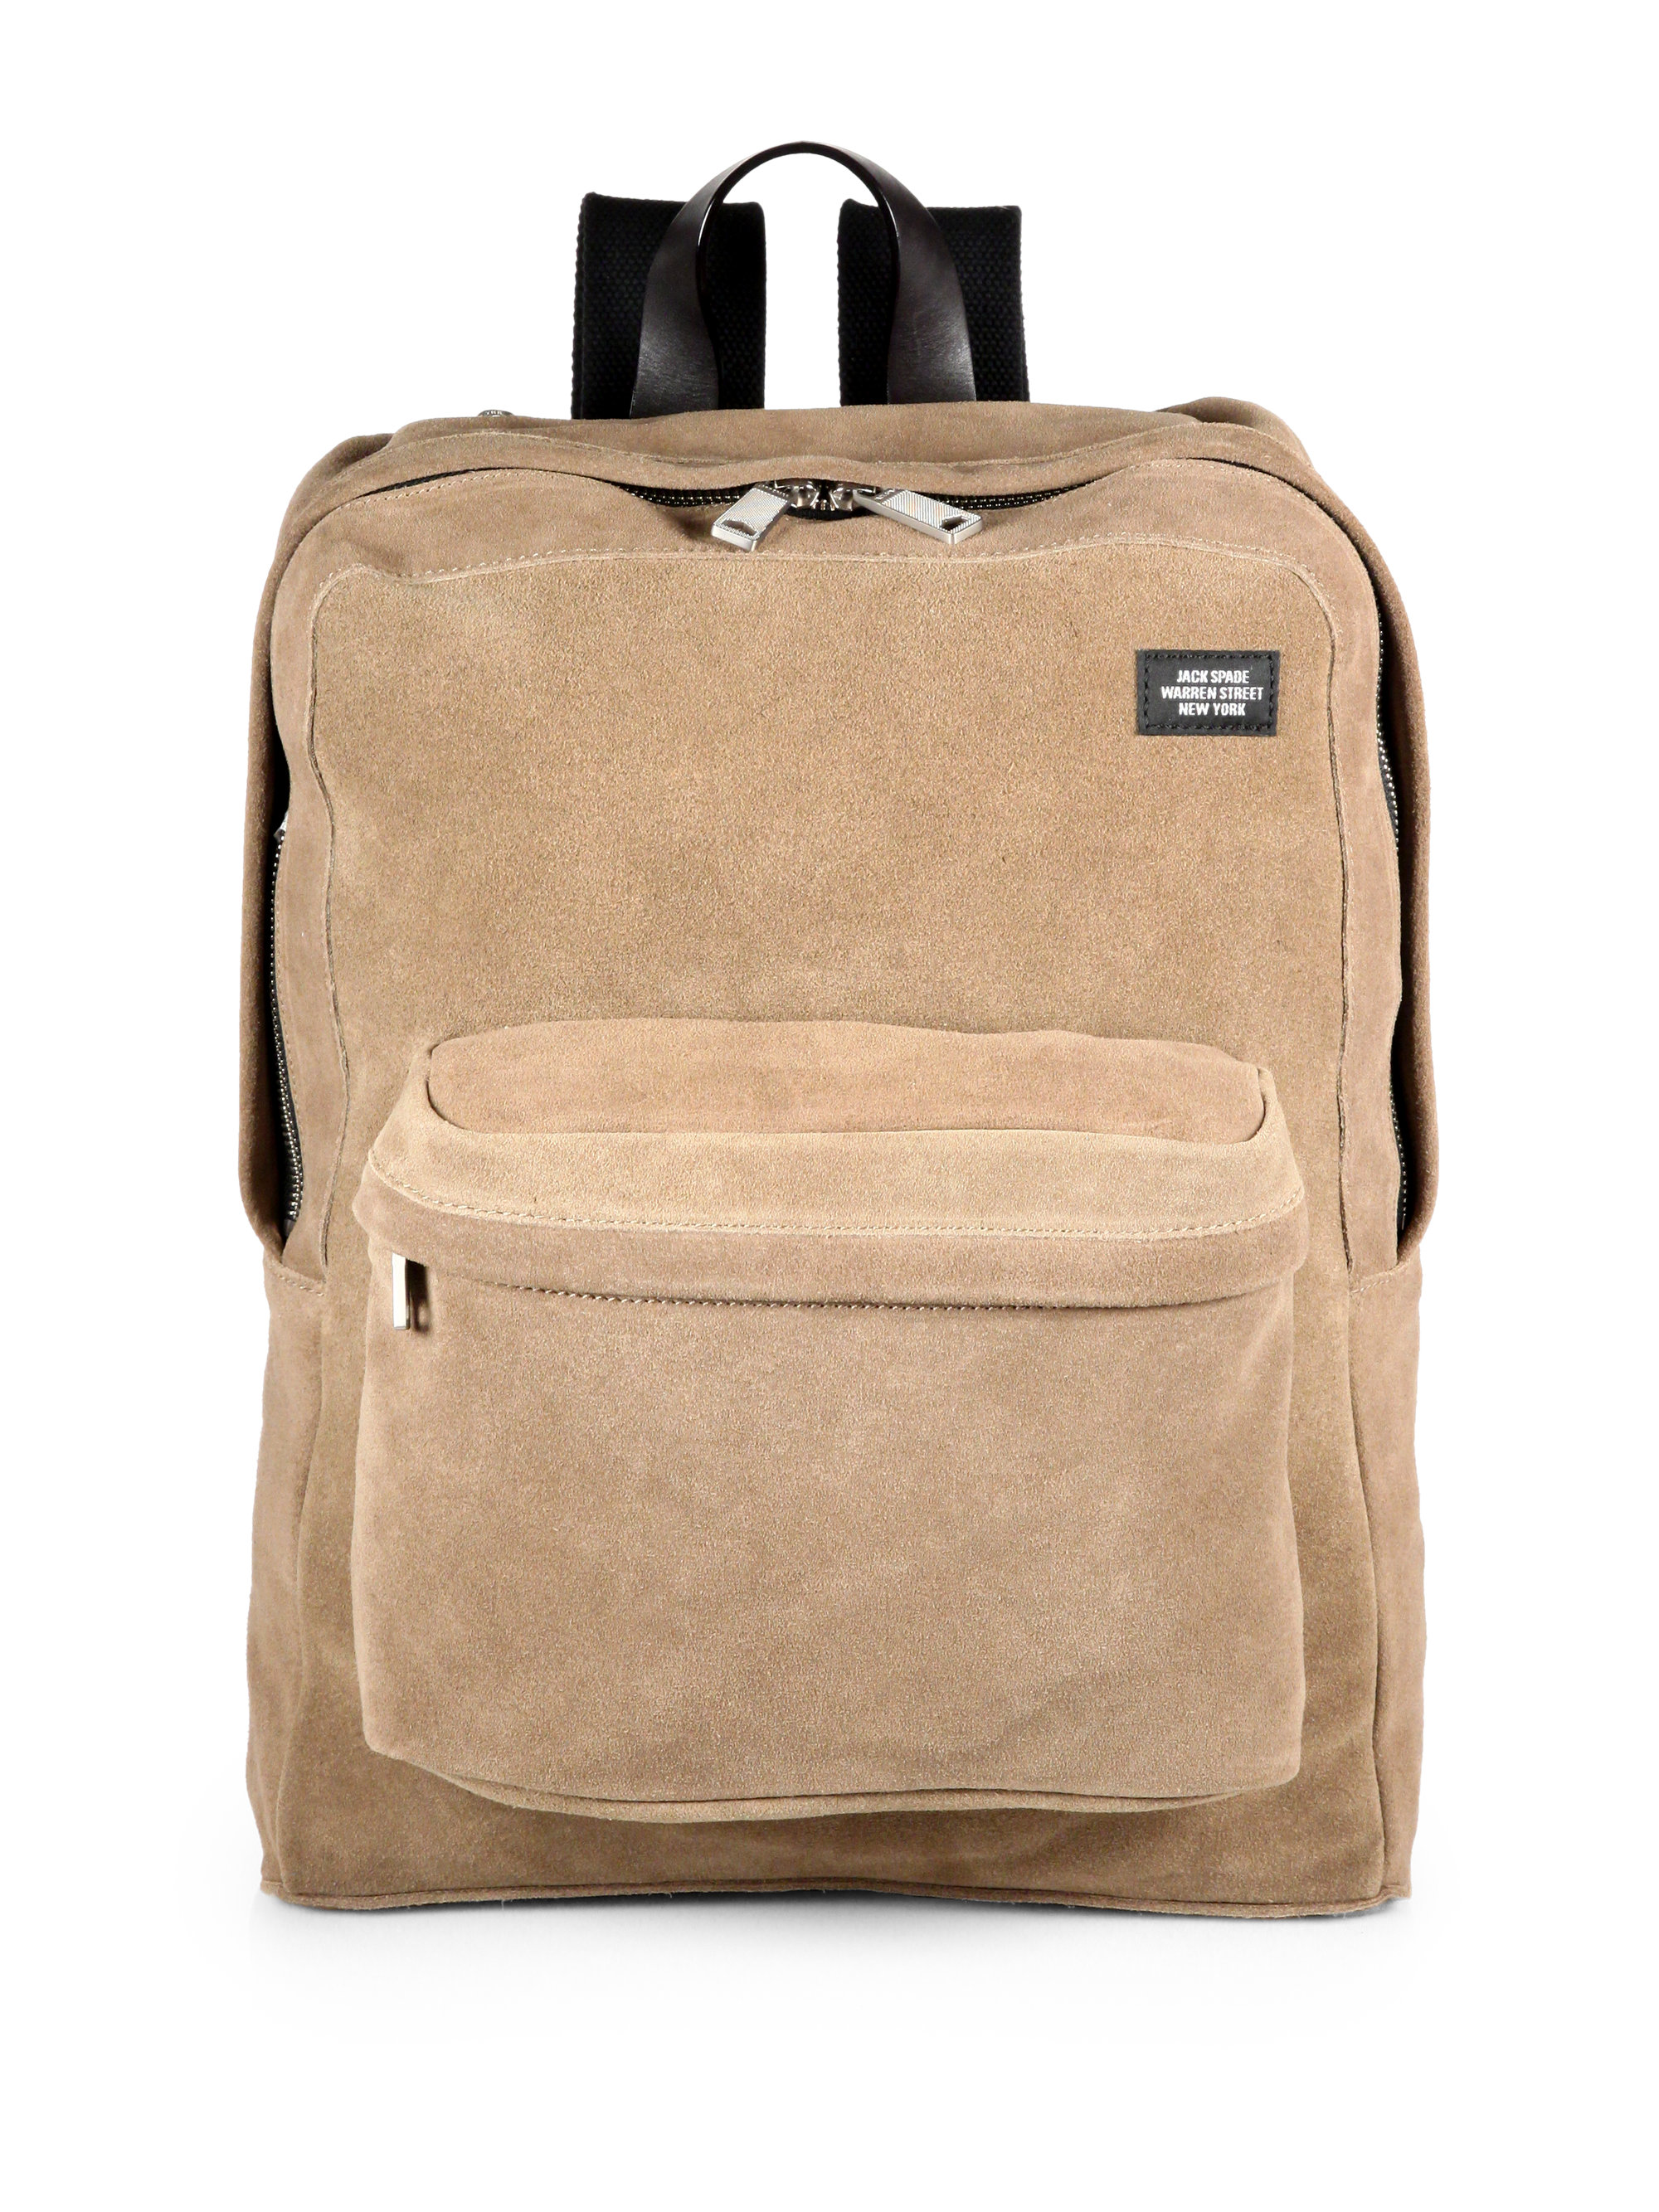 Jack spade Suede Backpack in Natural for Men | Lyst